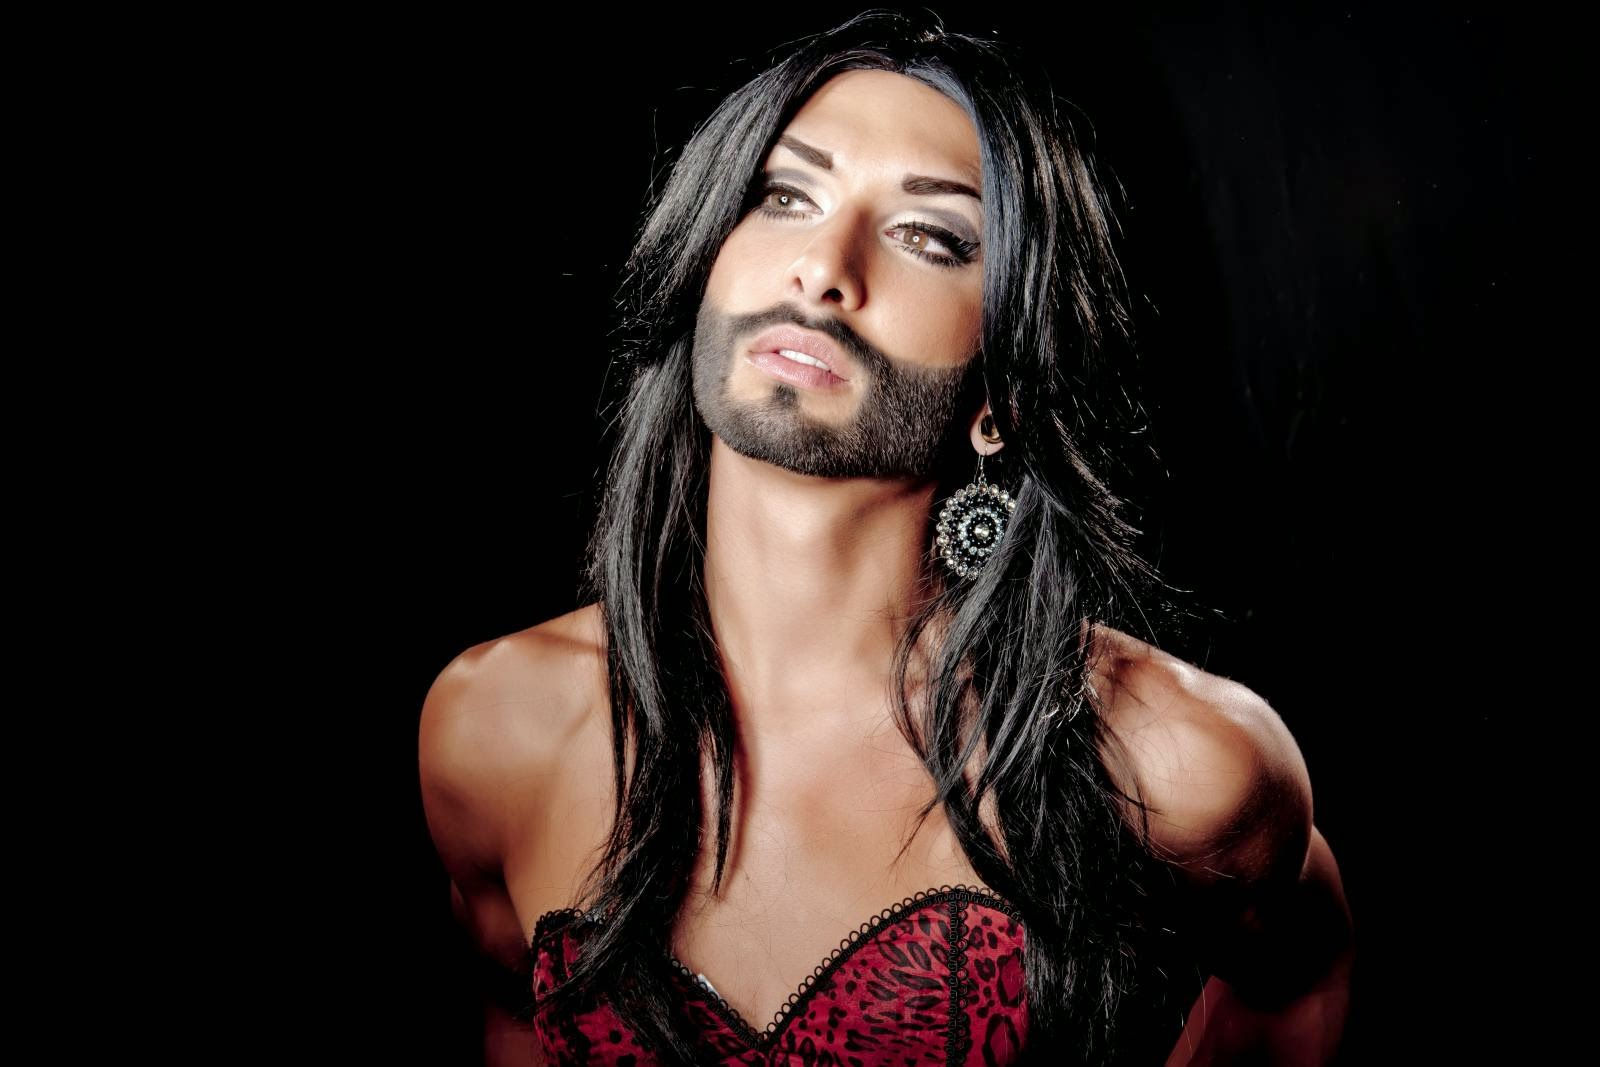 Bearded Drag Queen Wins Eurofestival on selection charger